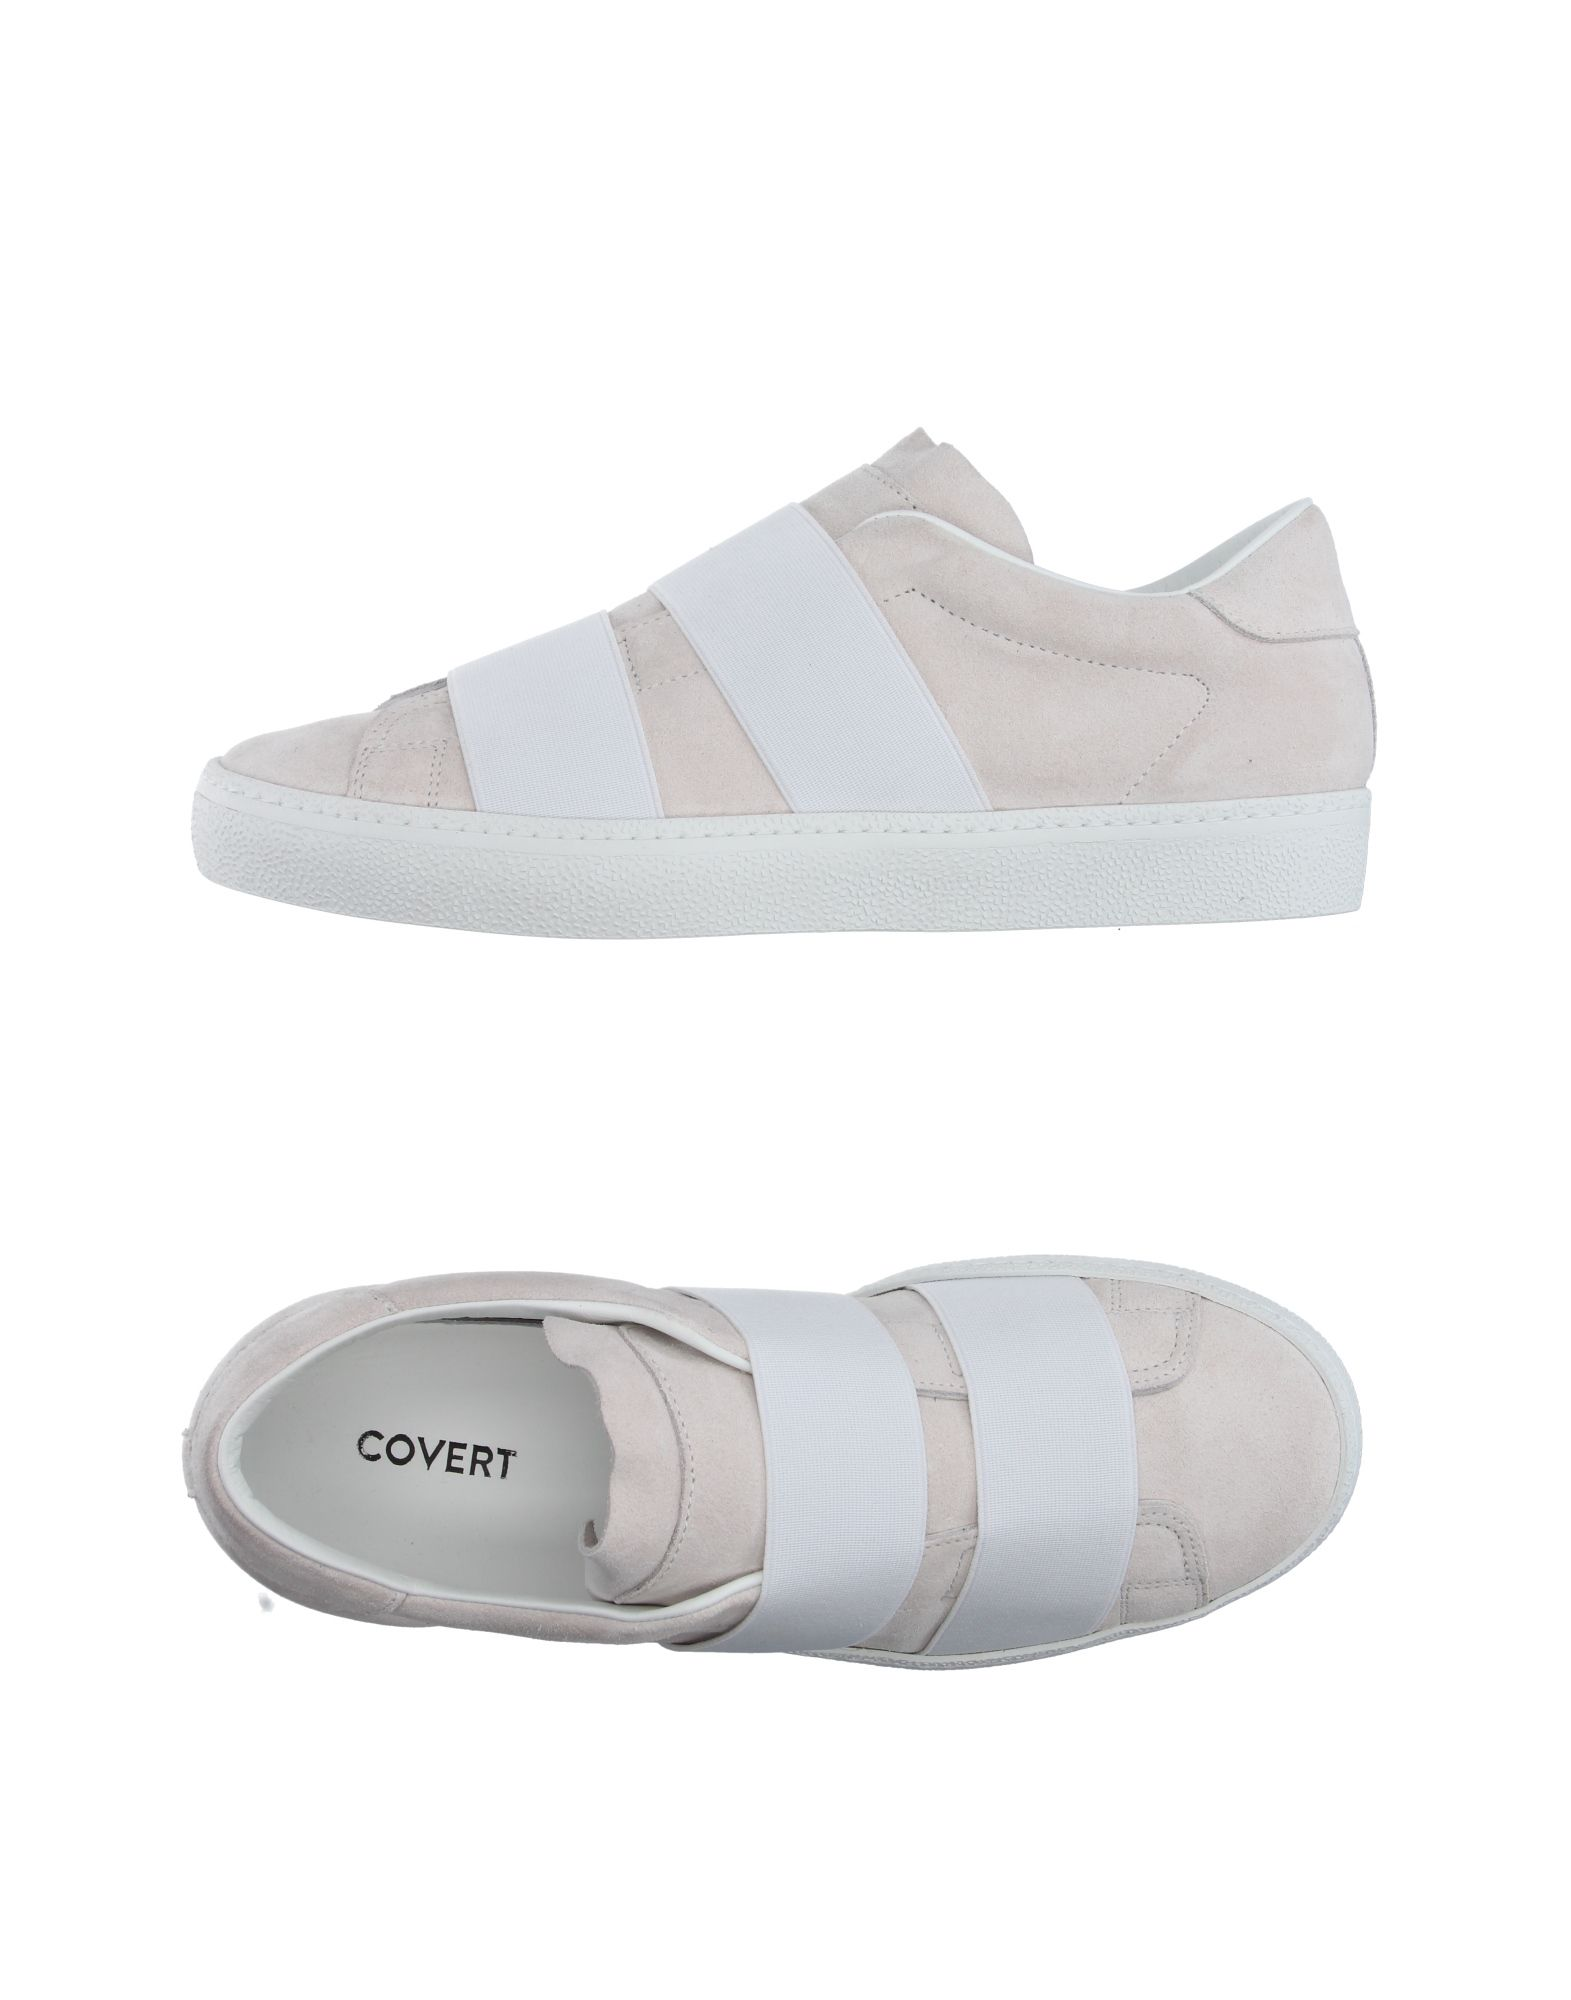 Sneakers Covert Femme - Sneakers Covert sur